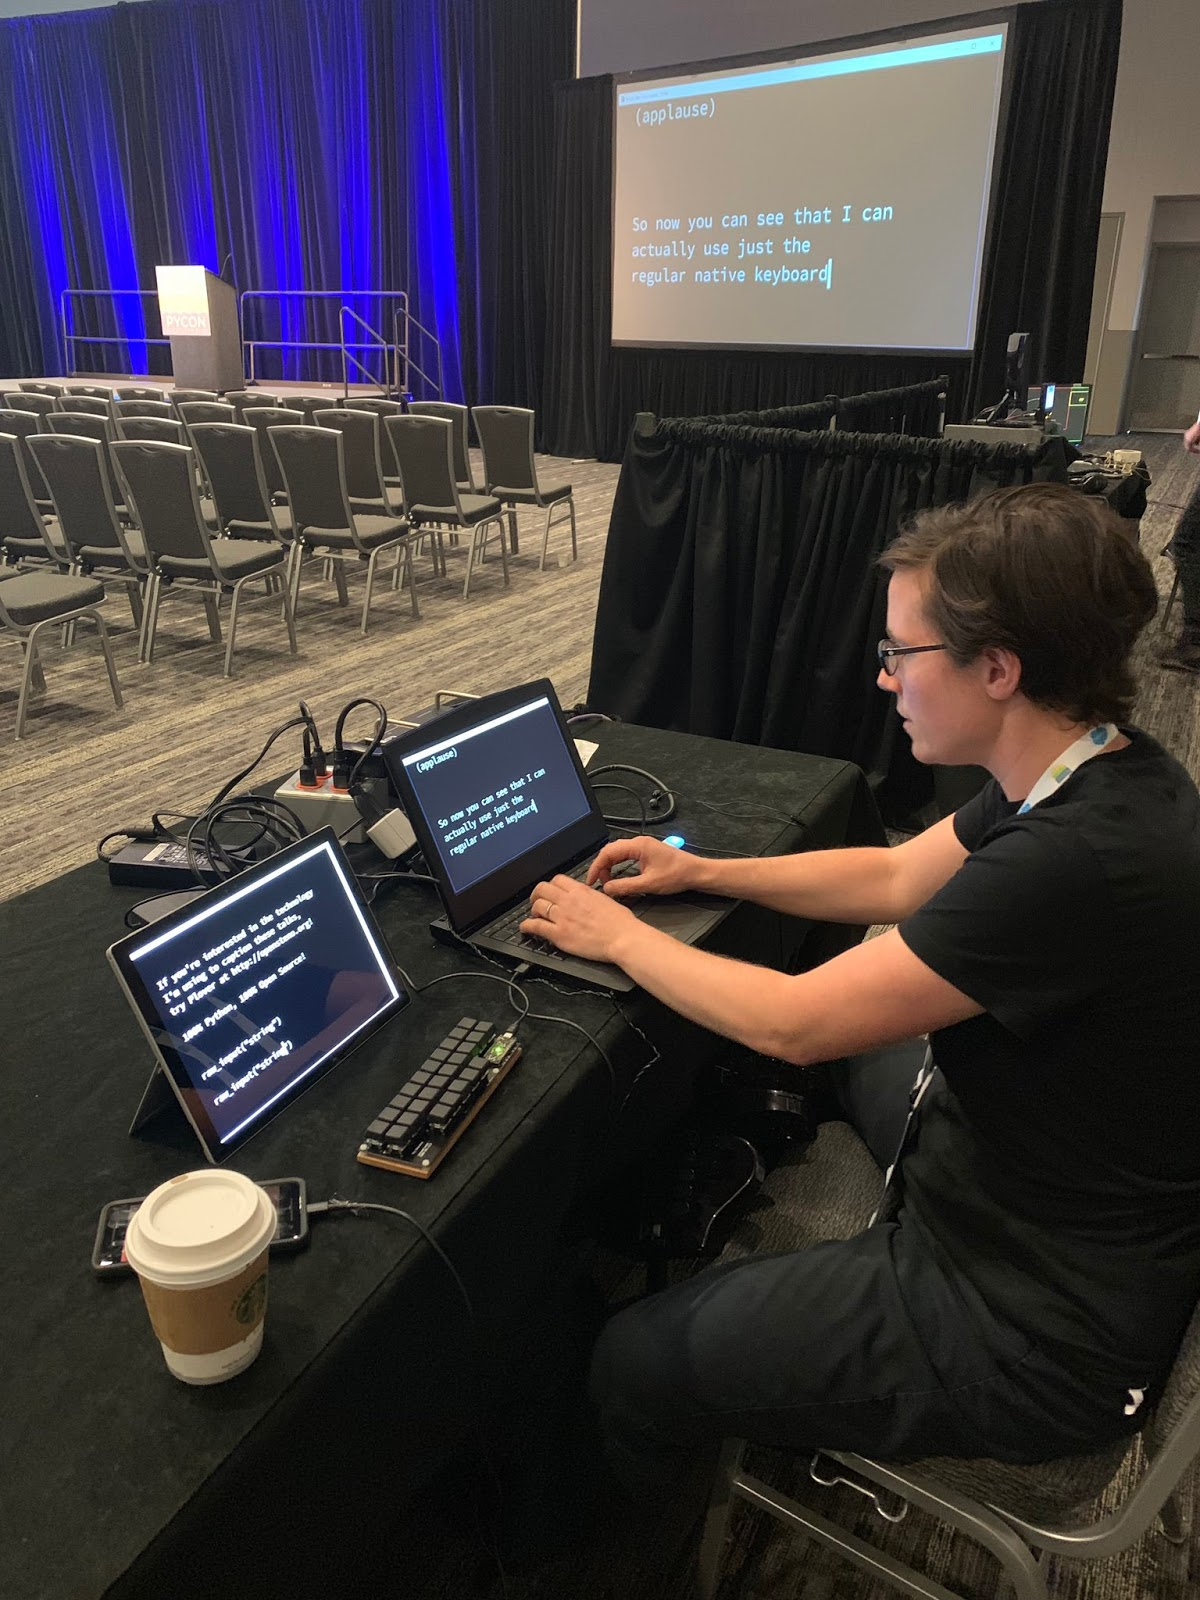 me demonstrating Plover at a table in a big conference room